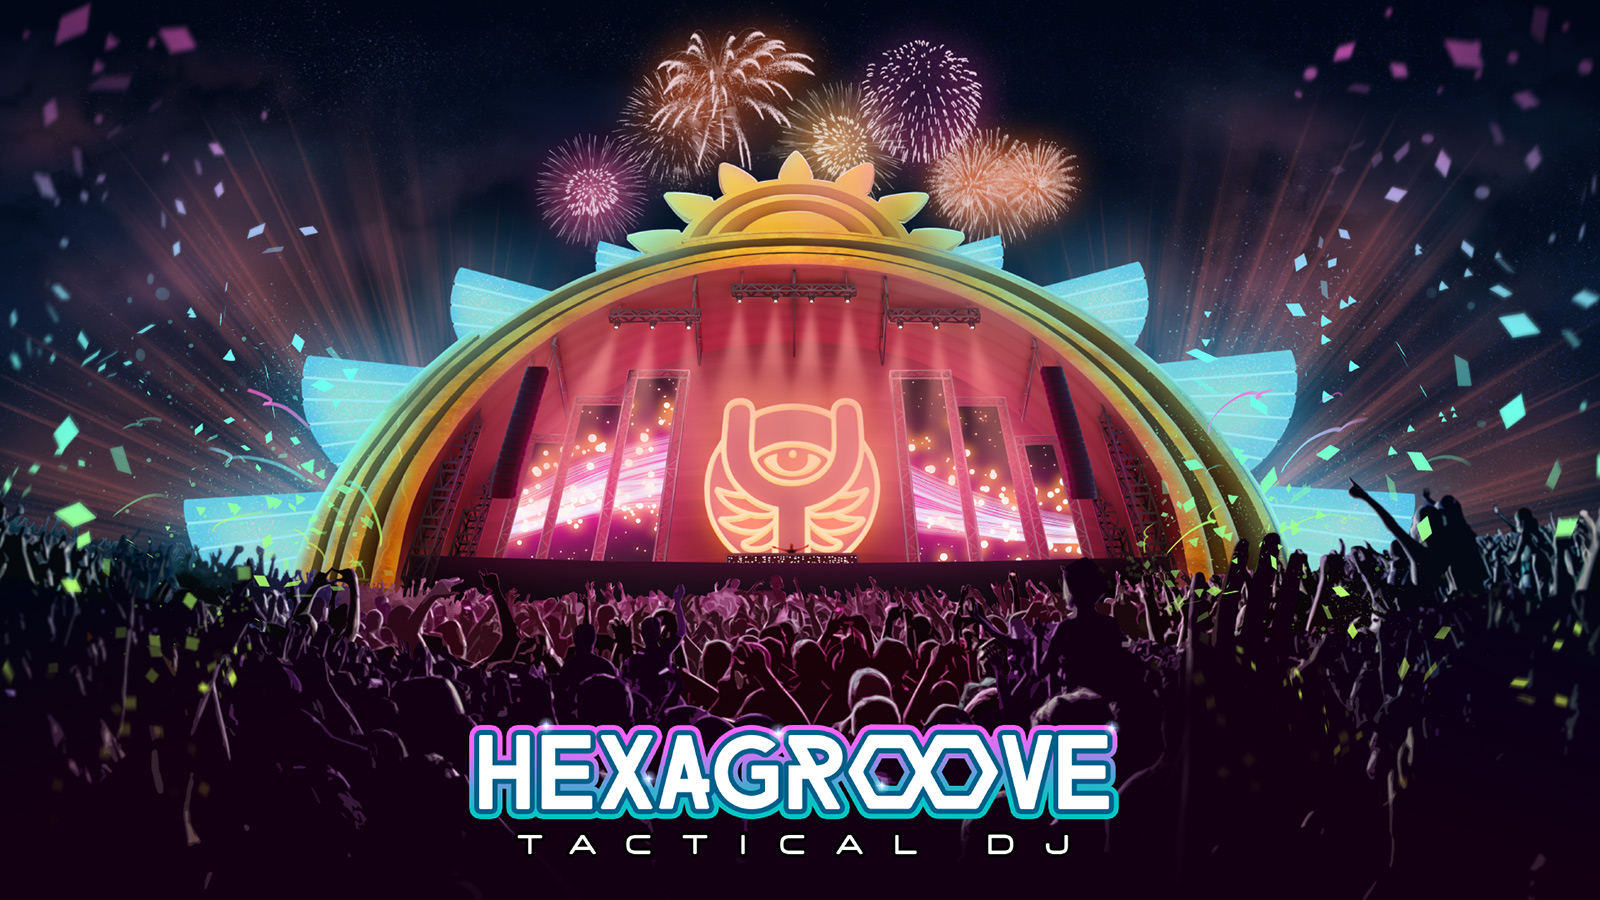 Promo art for the game Hexagroove